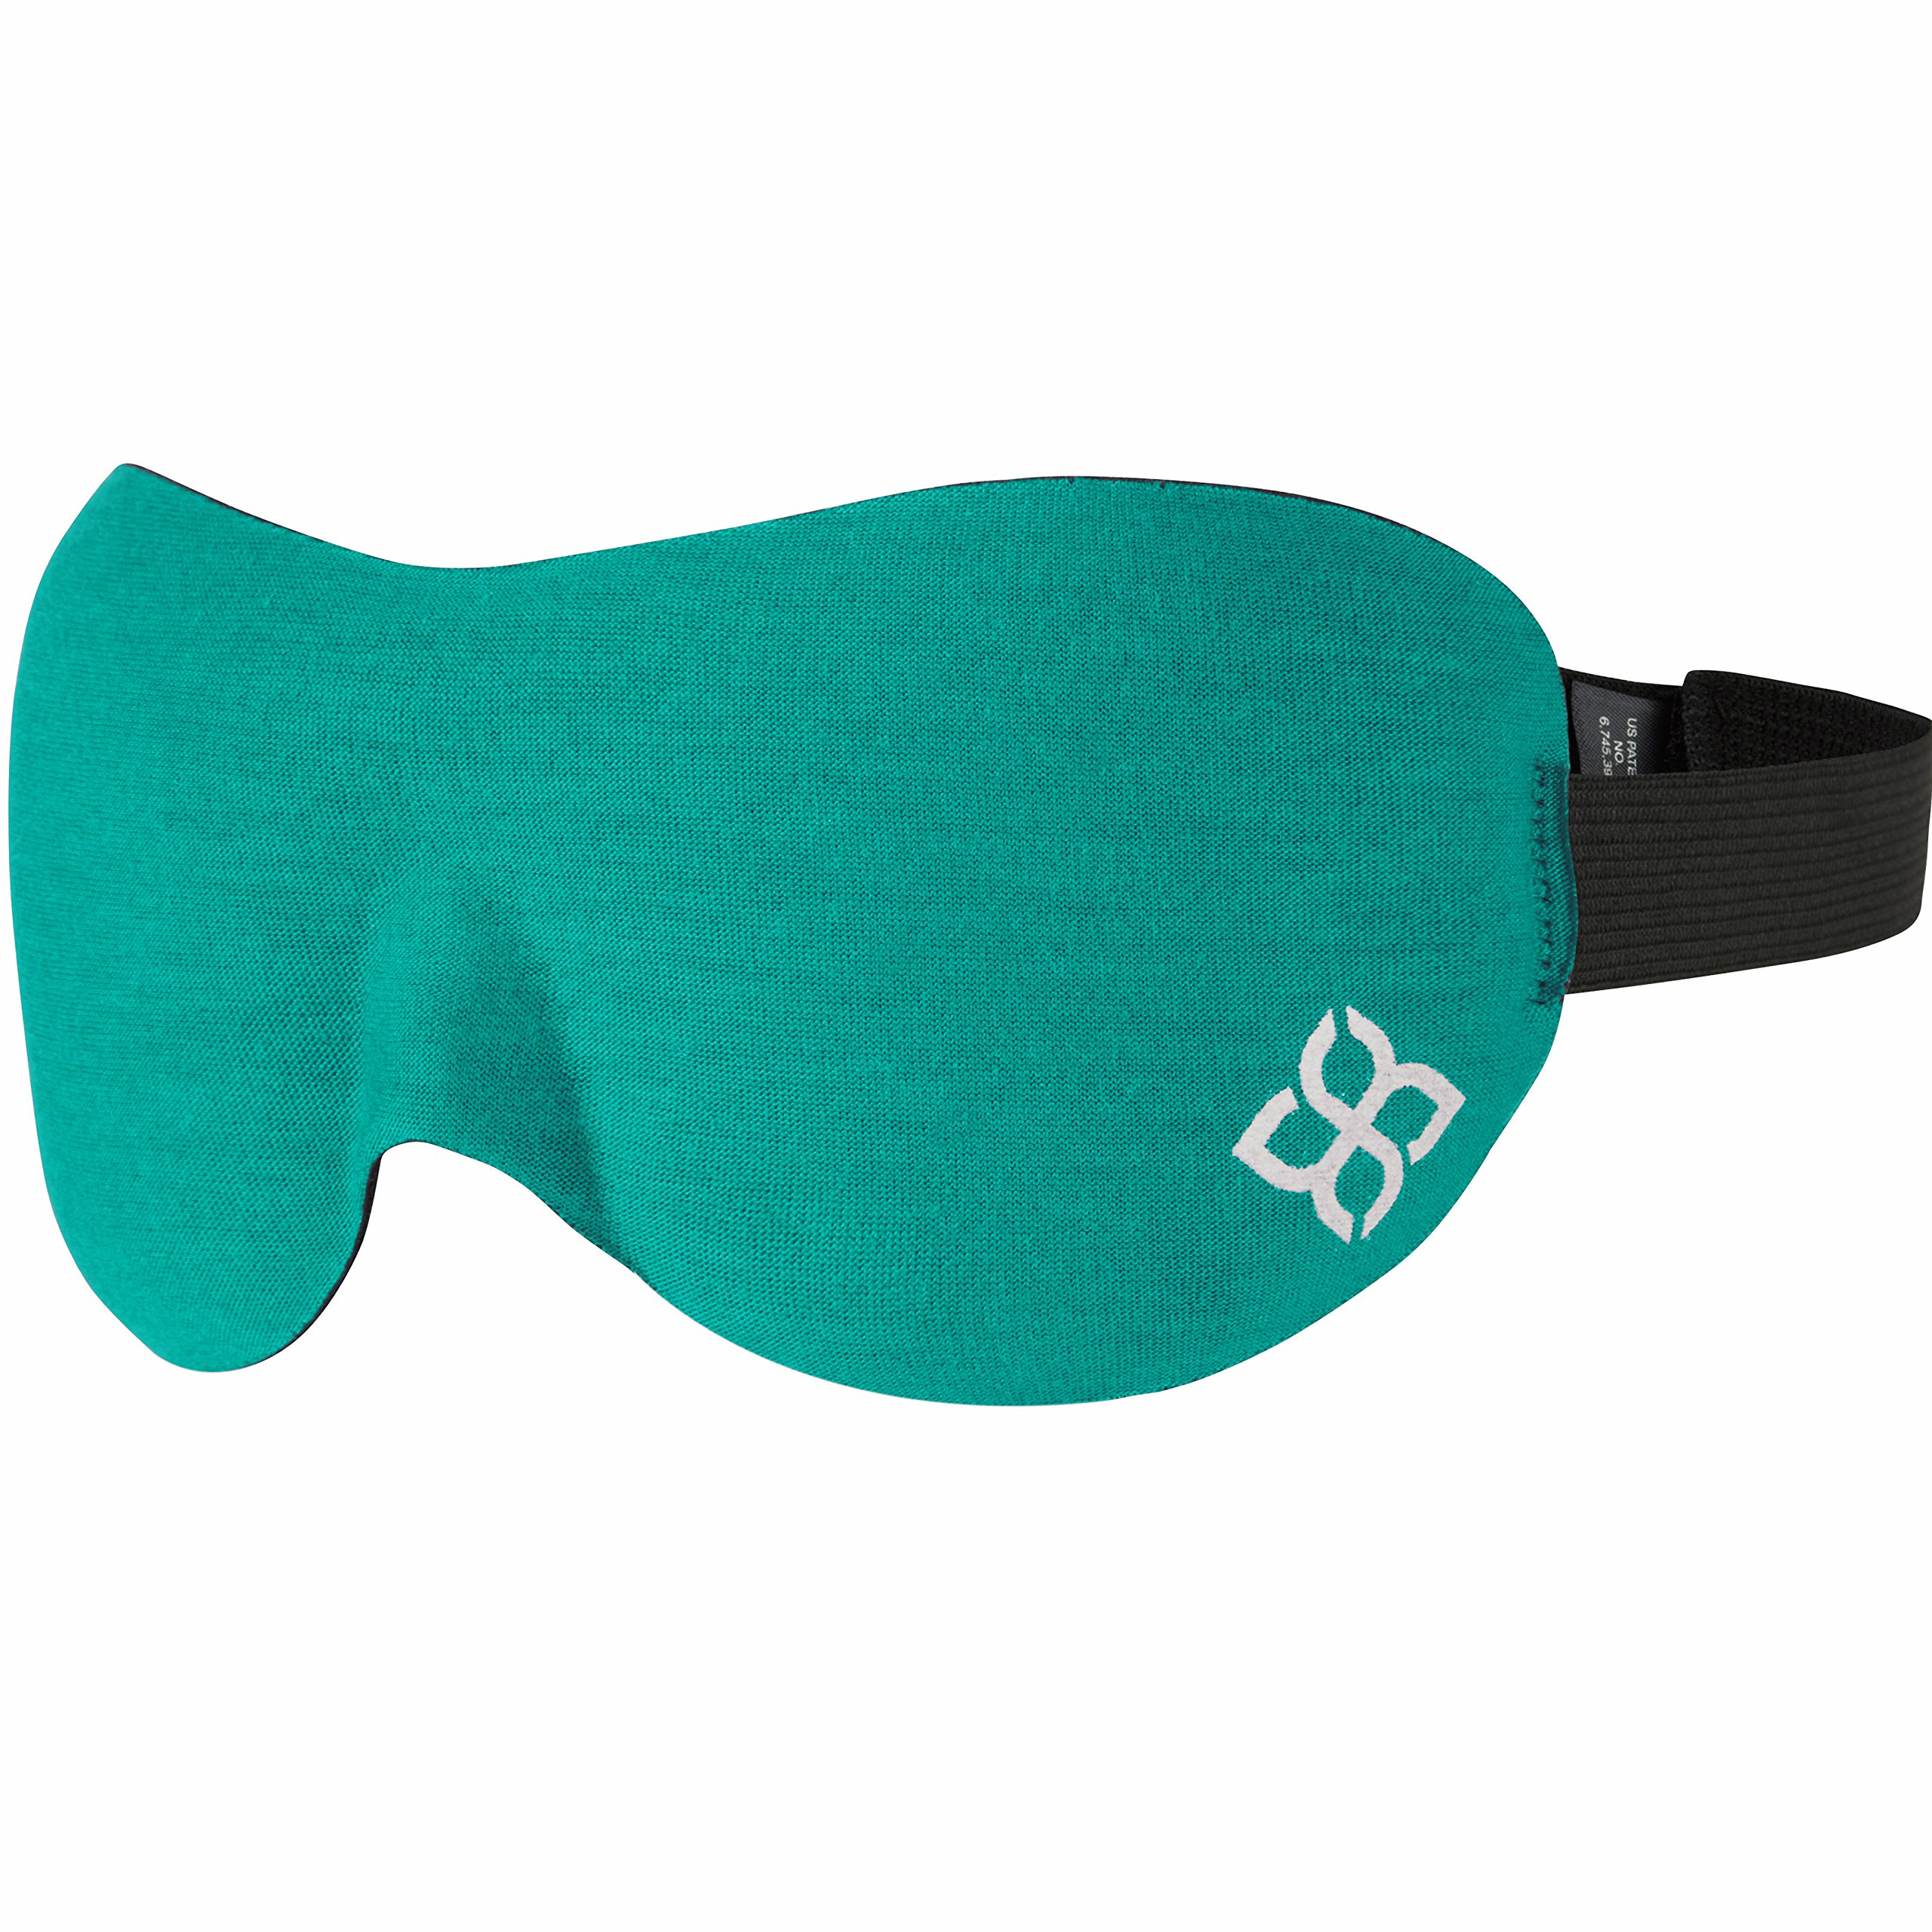 Sleep Mask by Bedtime Bliss - Contoured & Comfortable with Moldex Ear Plug Set. Includes Carry Pouch for Eye Mask and Ear Plugs - Great for Travel, Shift Work & Meditation (Turquoise)